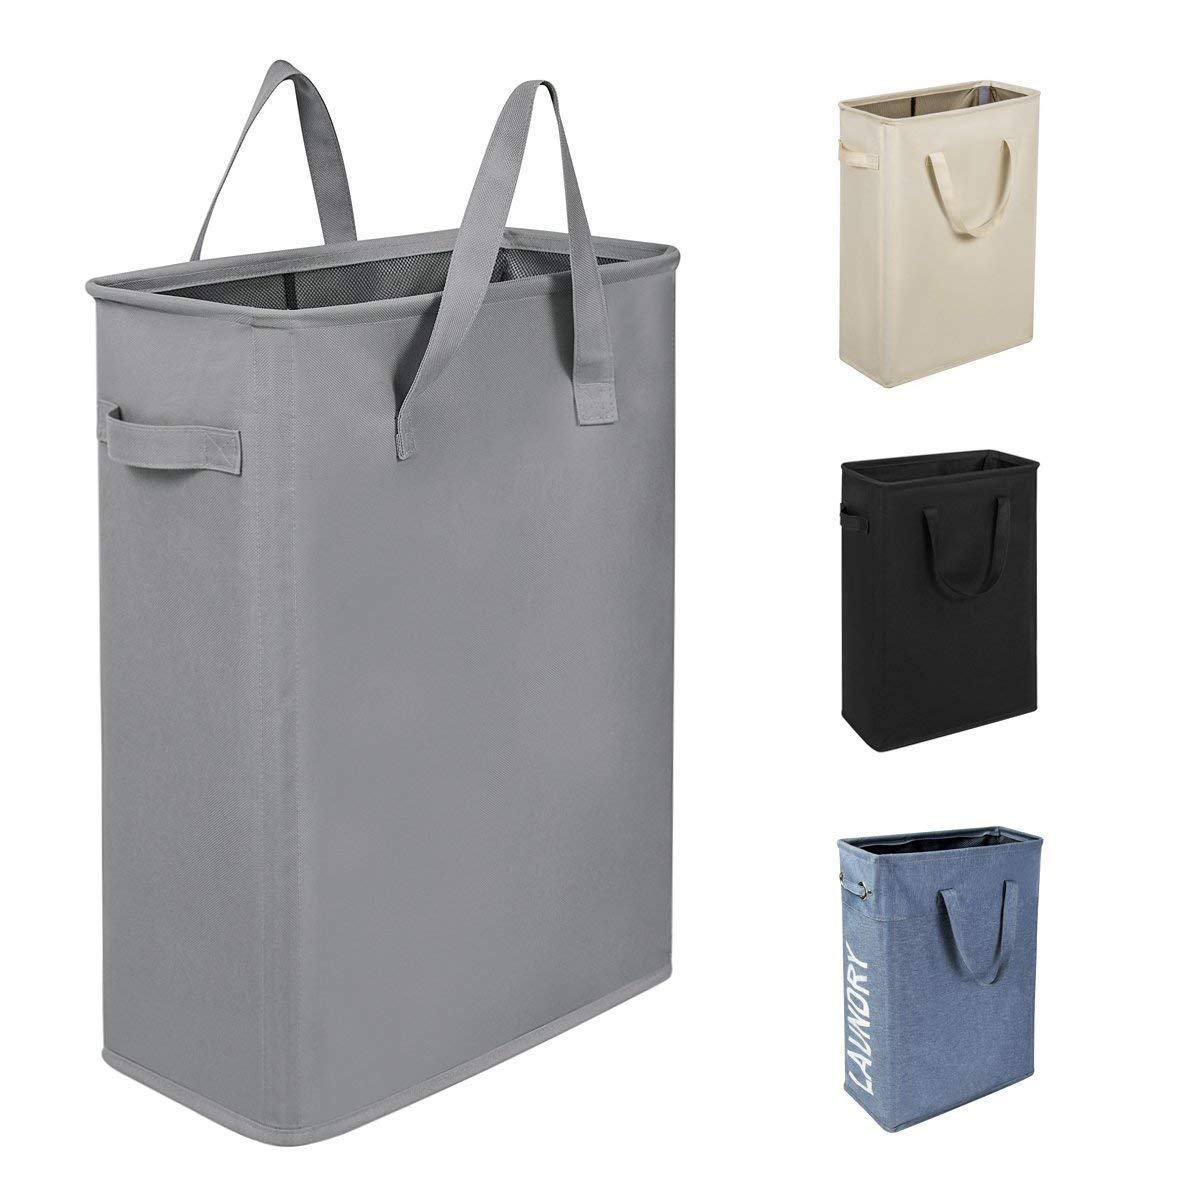 "WISHPOOL 21"" Slim Laundry Hamper Small Laundry Basket Narrow Thin Laundry Hamper Dirty Clothes Hamper with Handles Collapsible Hampers for Laundry(Slim 21"", Grey)"